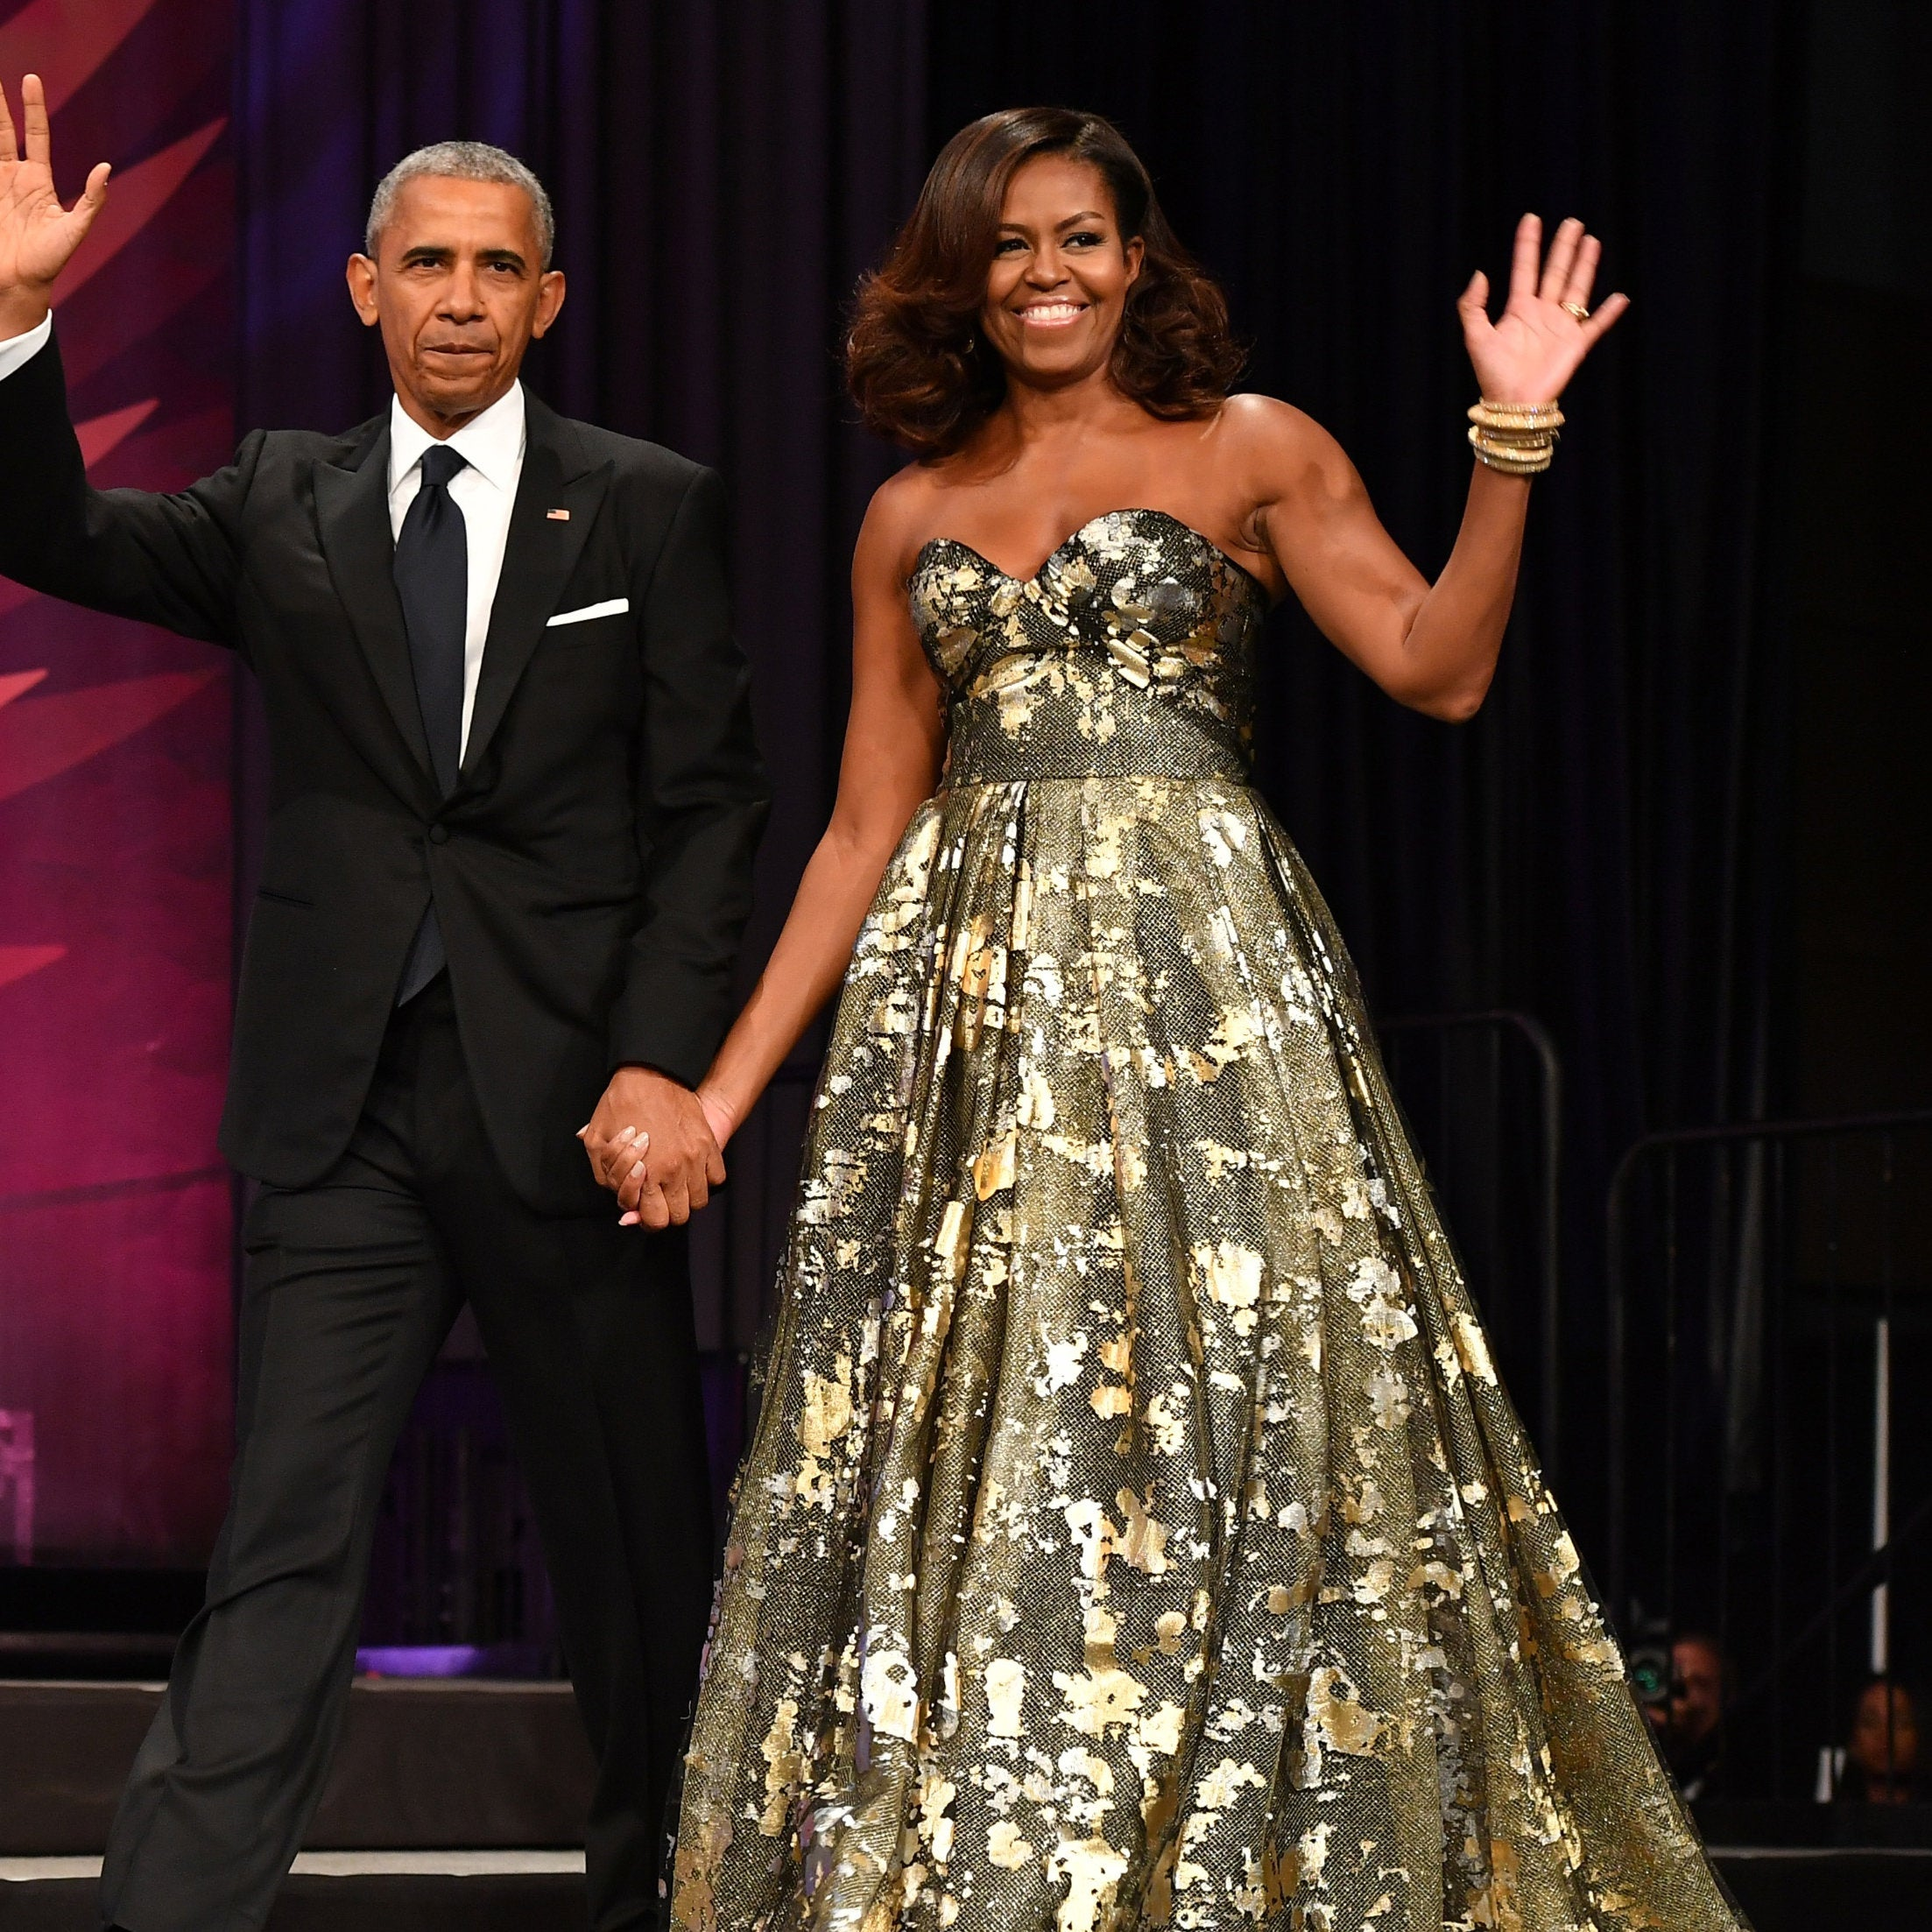 Black Love: Barack and Michelle Obama's Love Through the Years